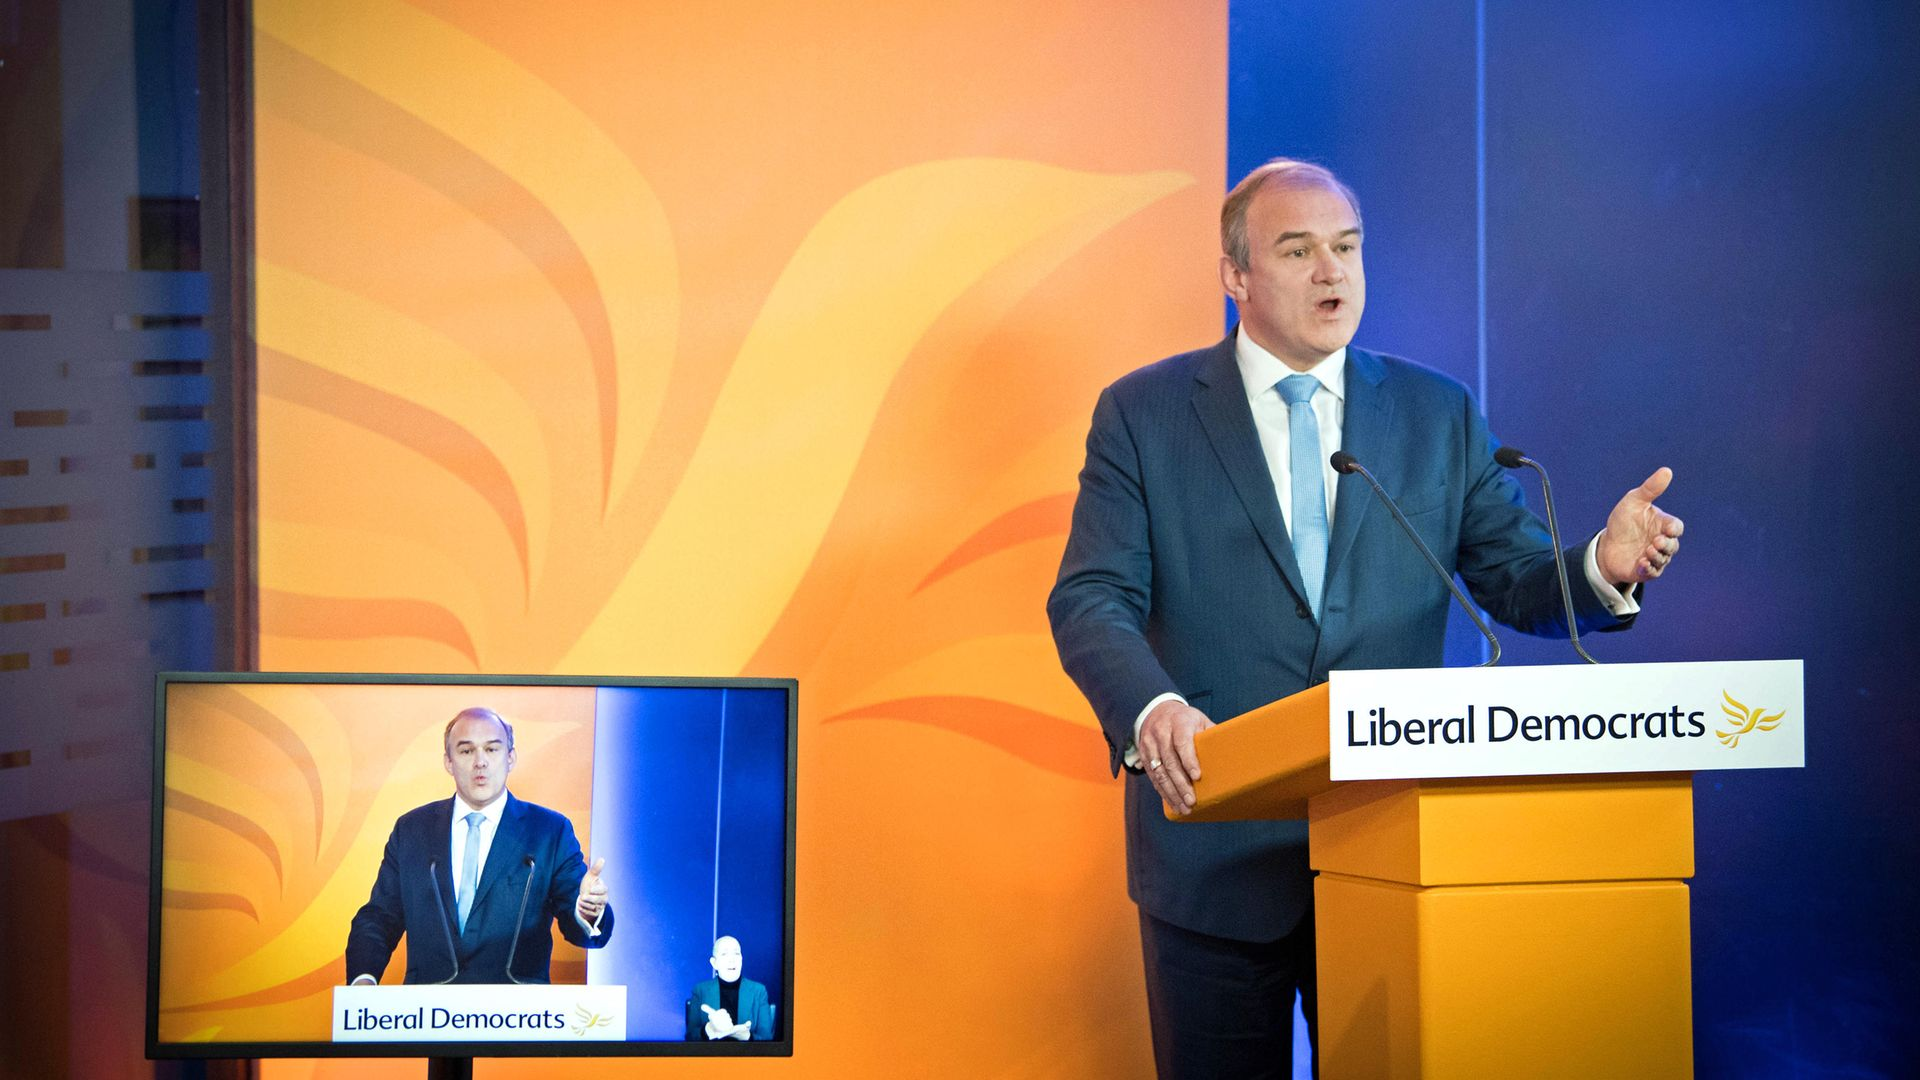 Liberal Democrat leader Sir Ed Davey delivers his keynote speech during the party's online conference - Credit: PA